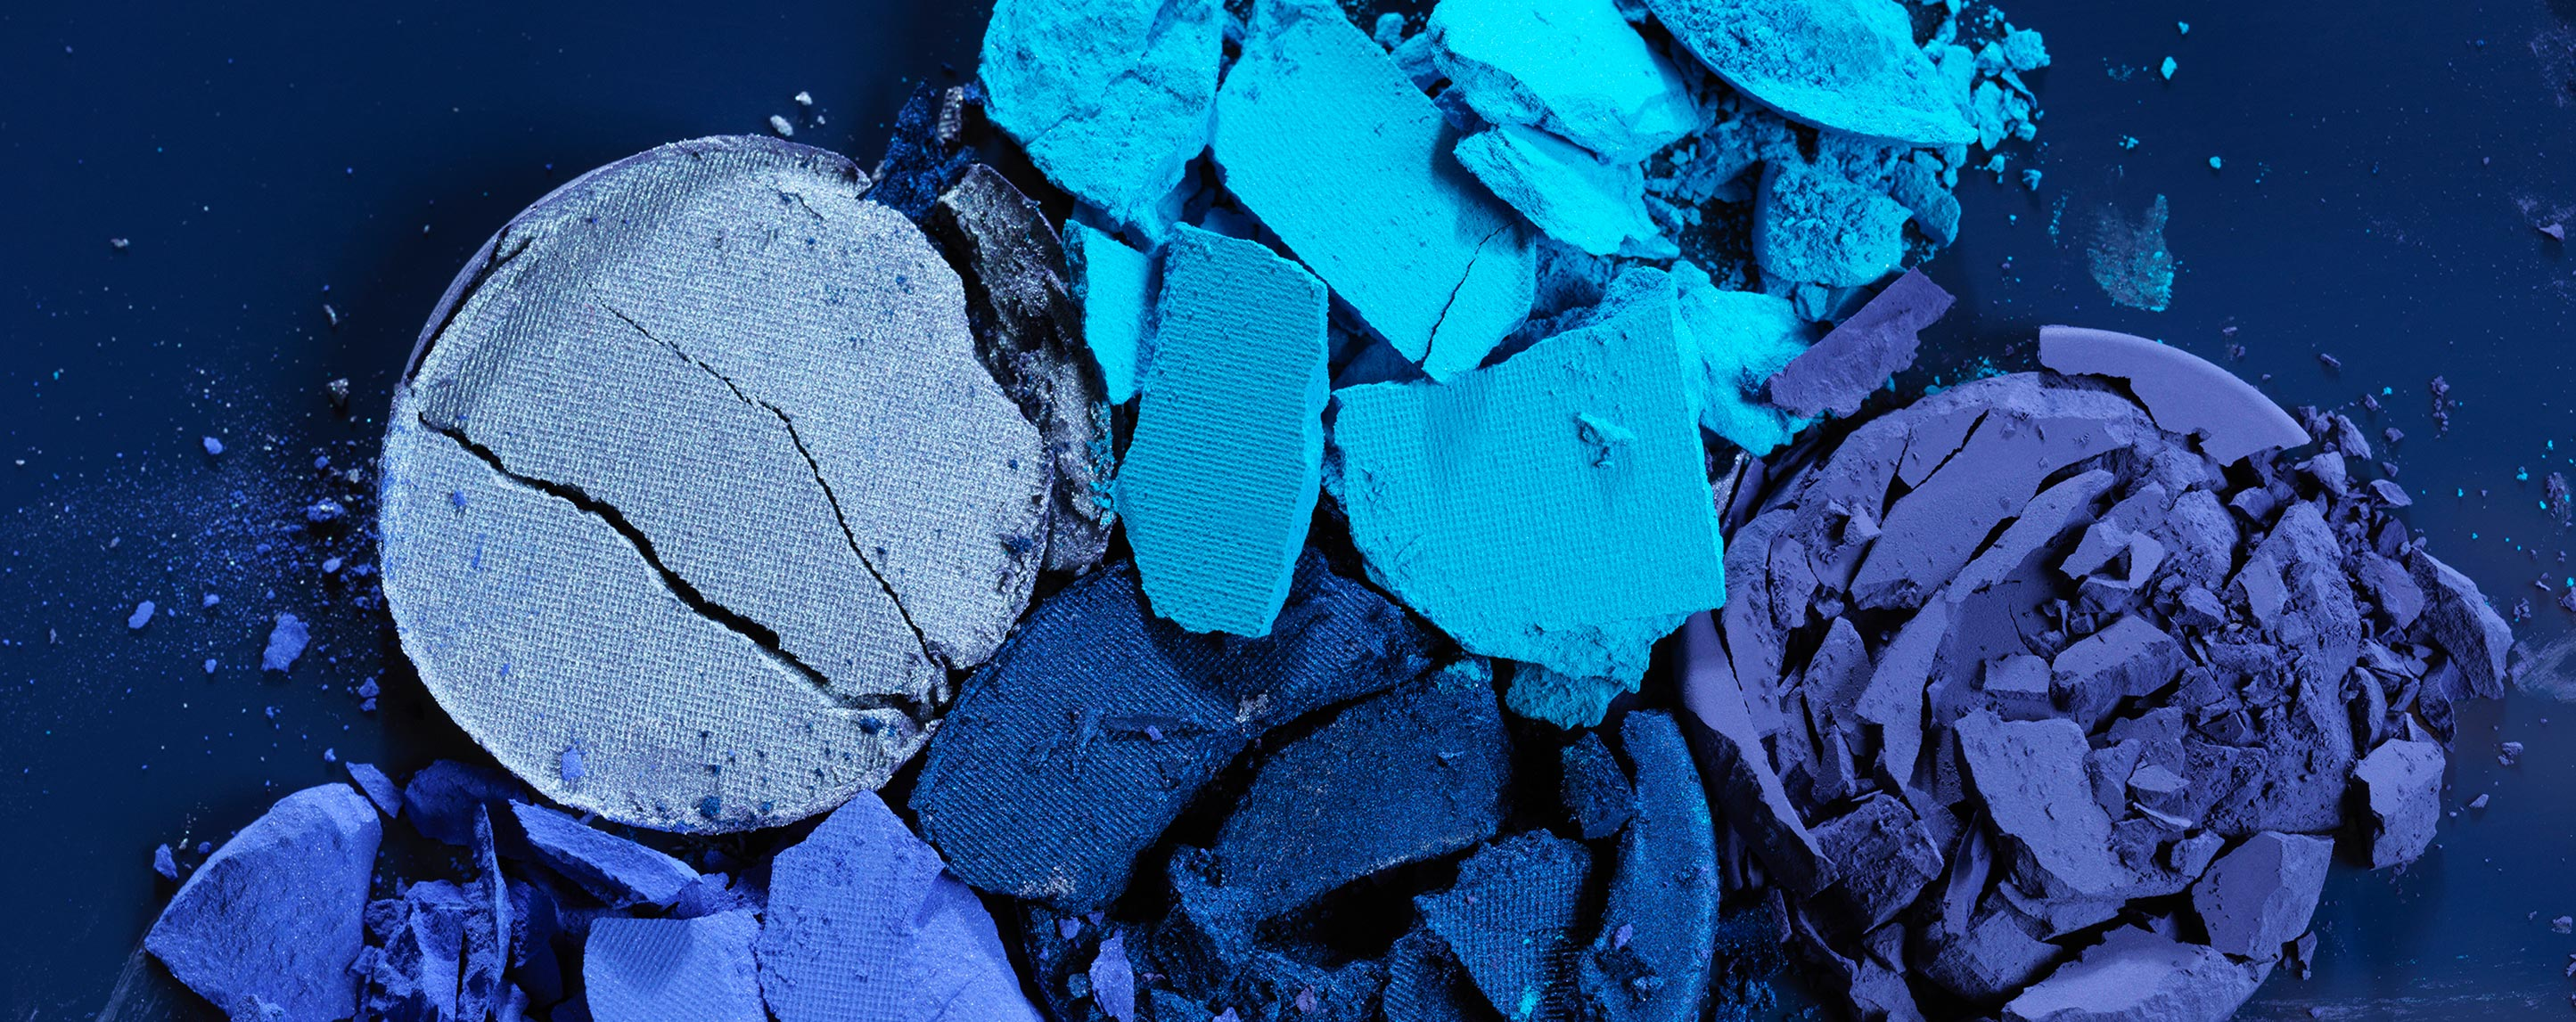 Three stacks of broken makeup powder in various shades of blue and purple sit on an indigo background.